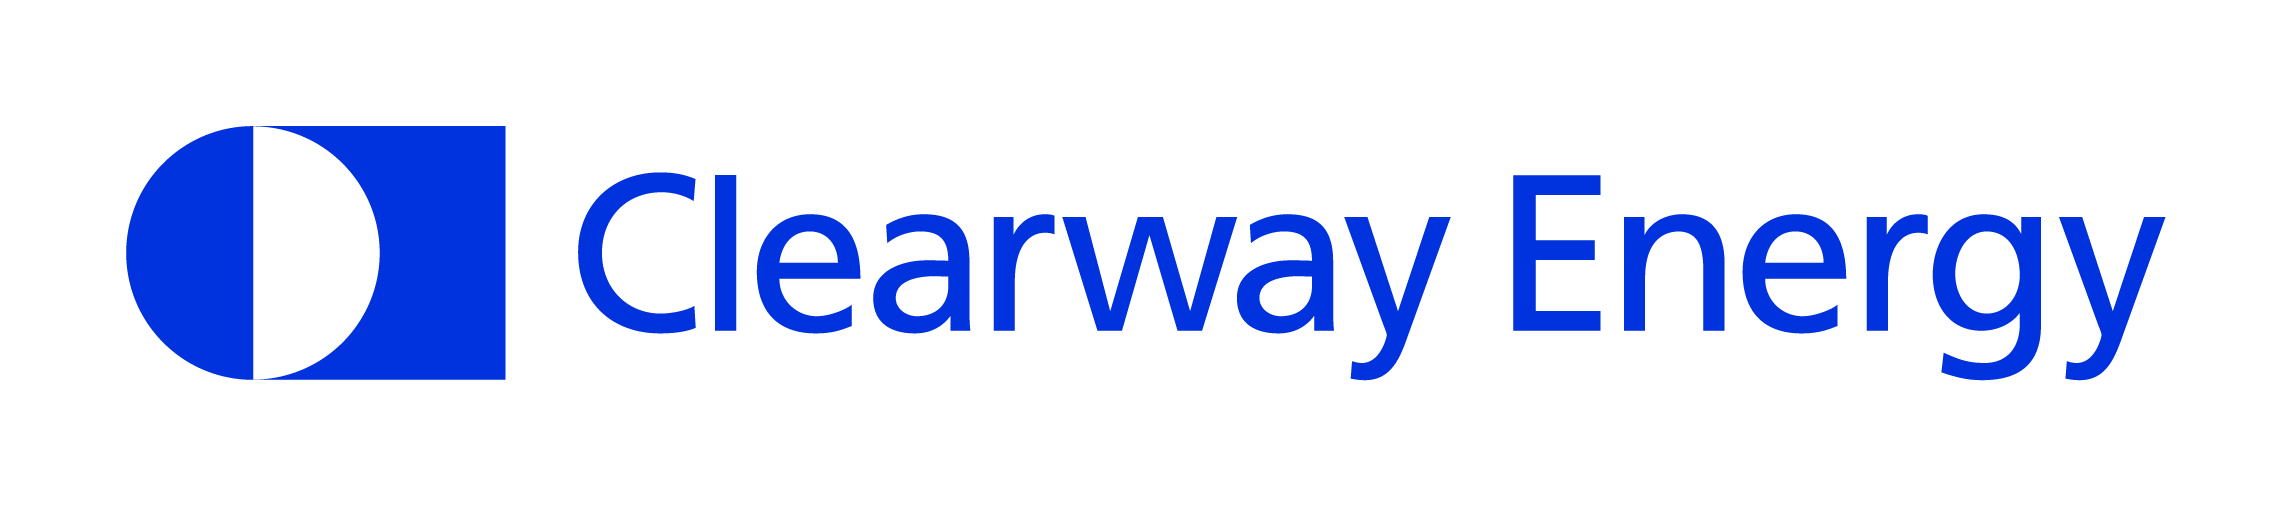 clearway_inc_logo_color_primary.jpeg